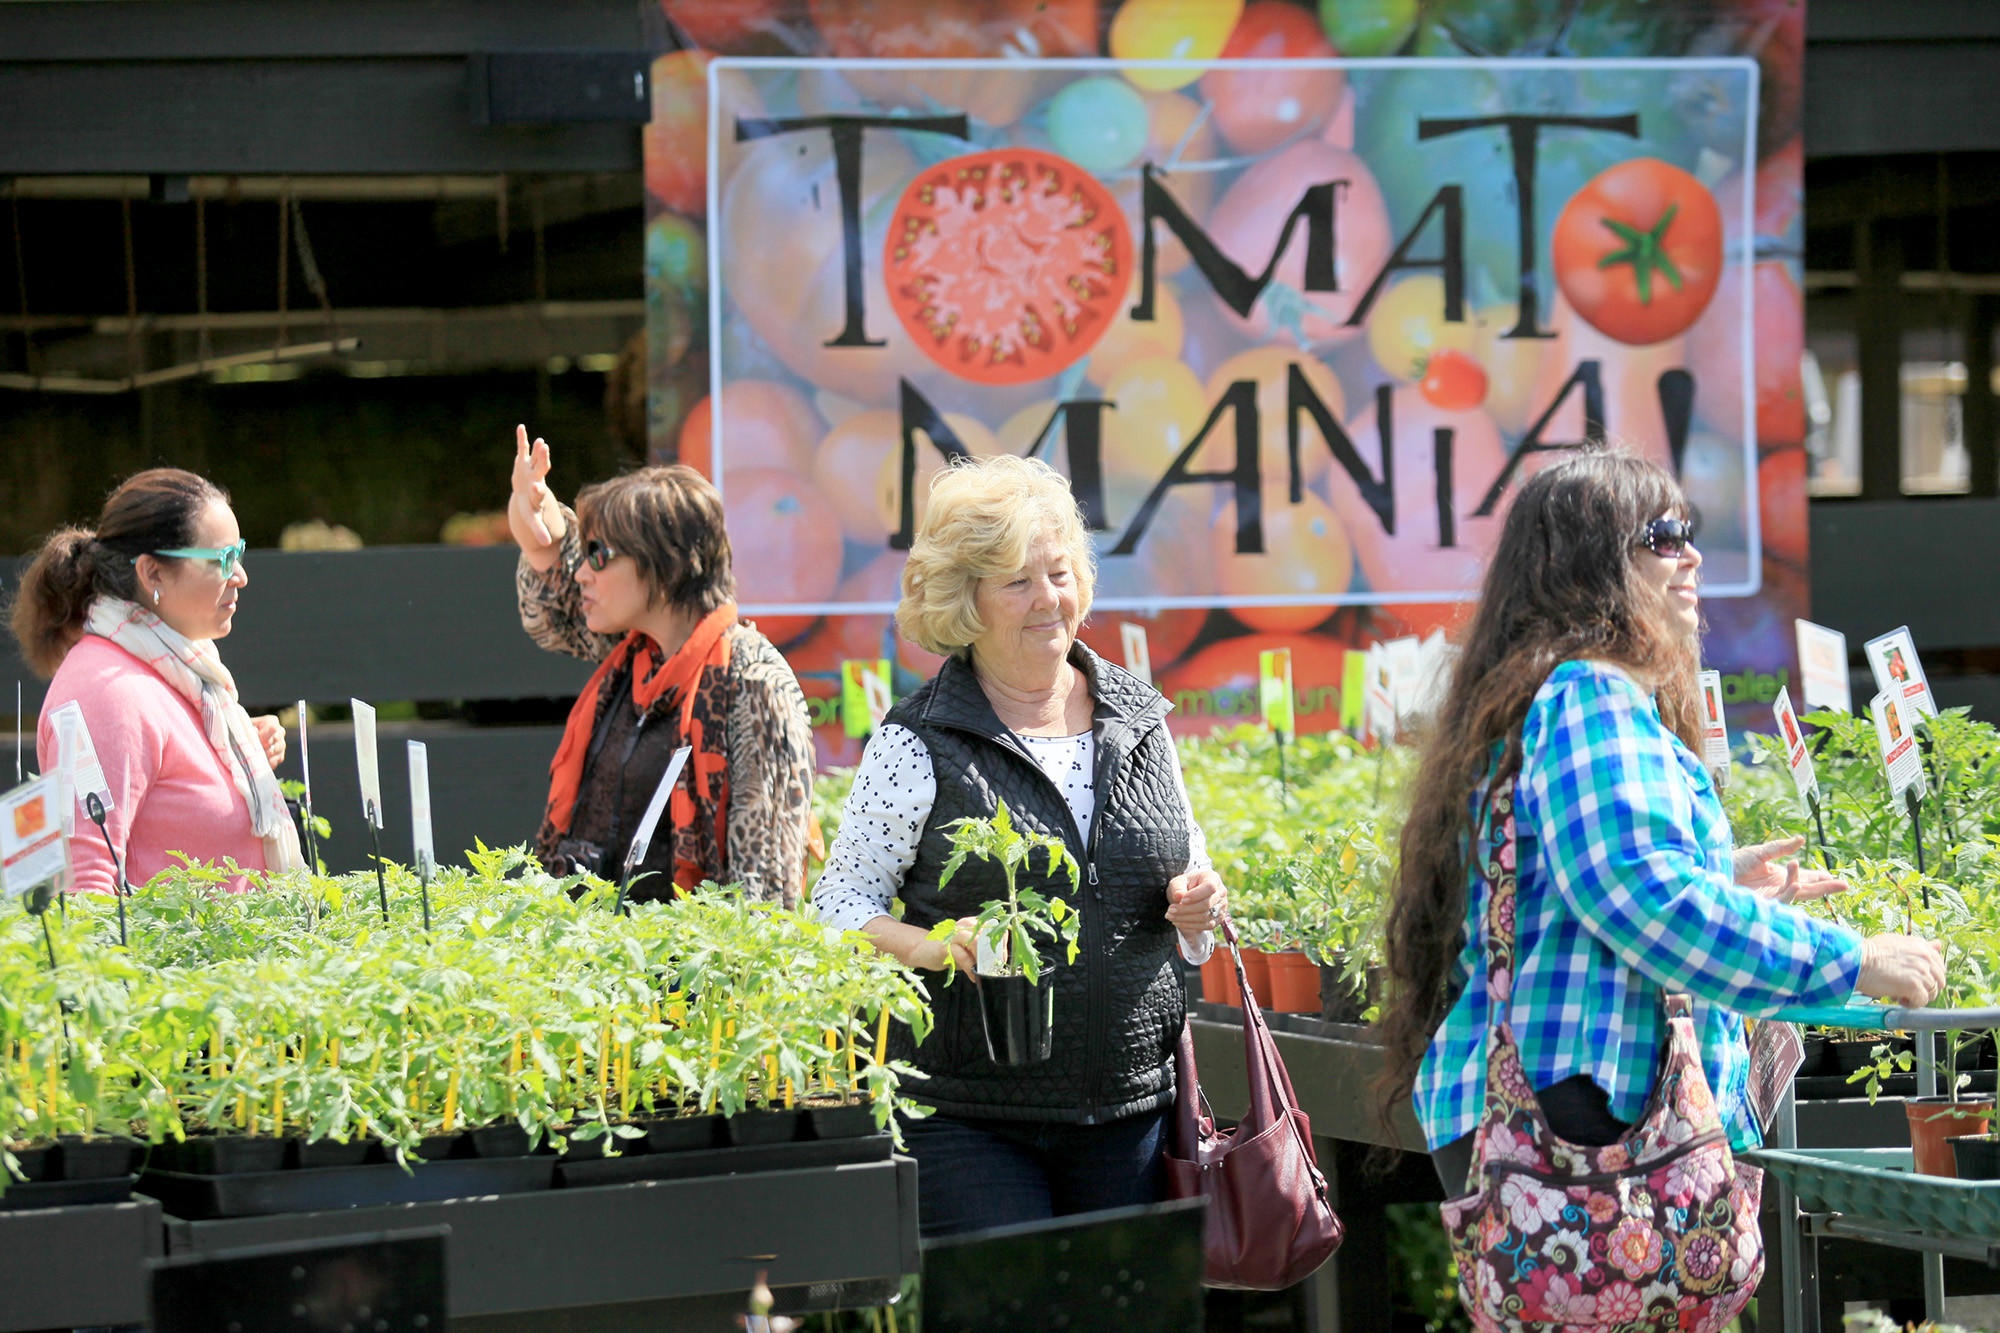 The third annual TomatoMania! at Roger's Gardens in Newport Beach carries more than 150 different types of tomato plants.